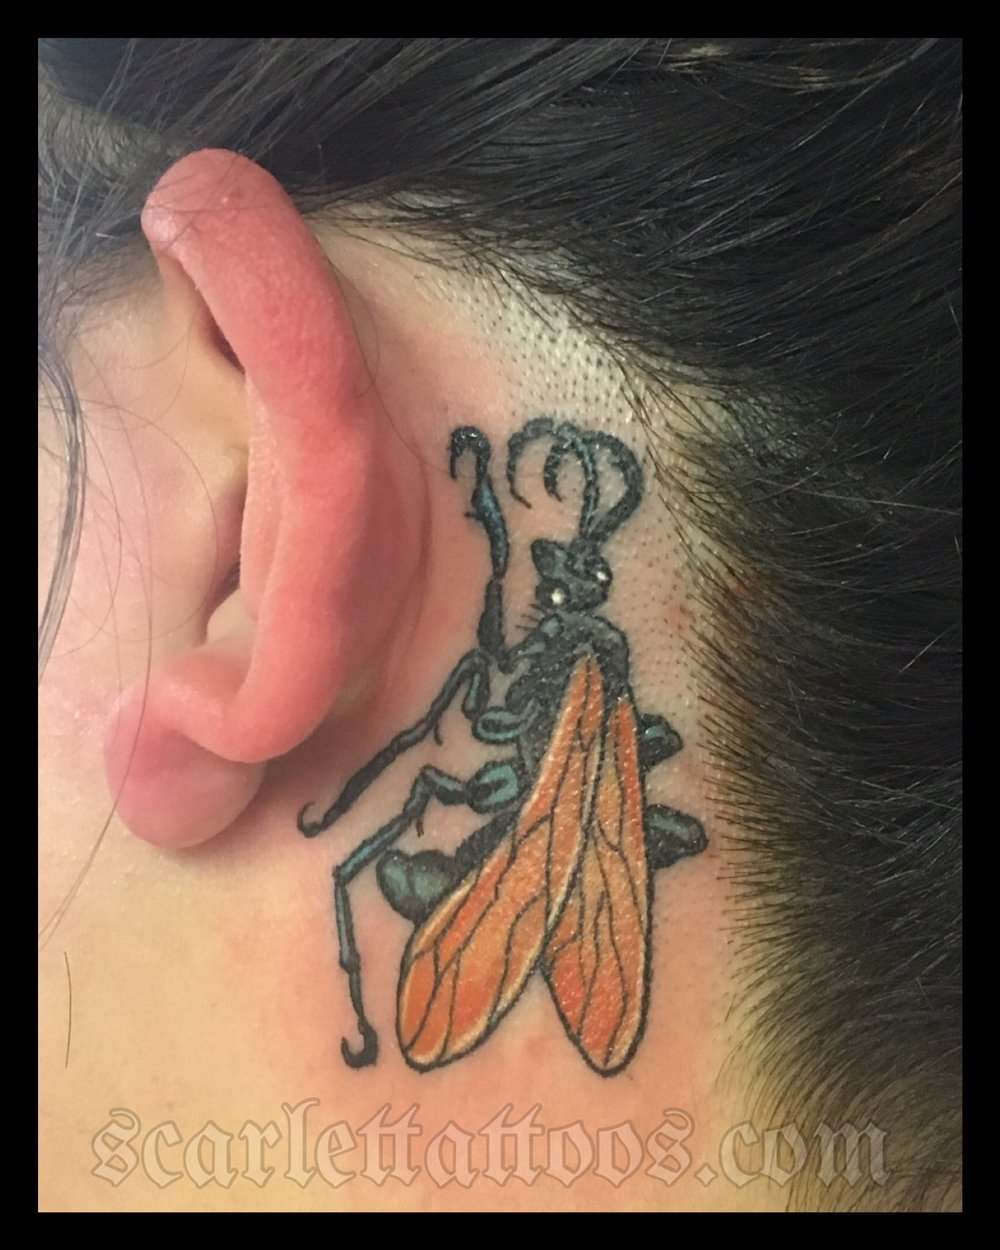 Tarantula Hawk tattoo